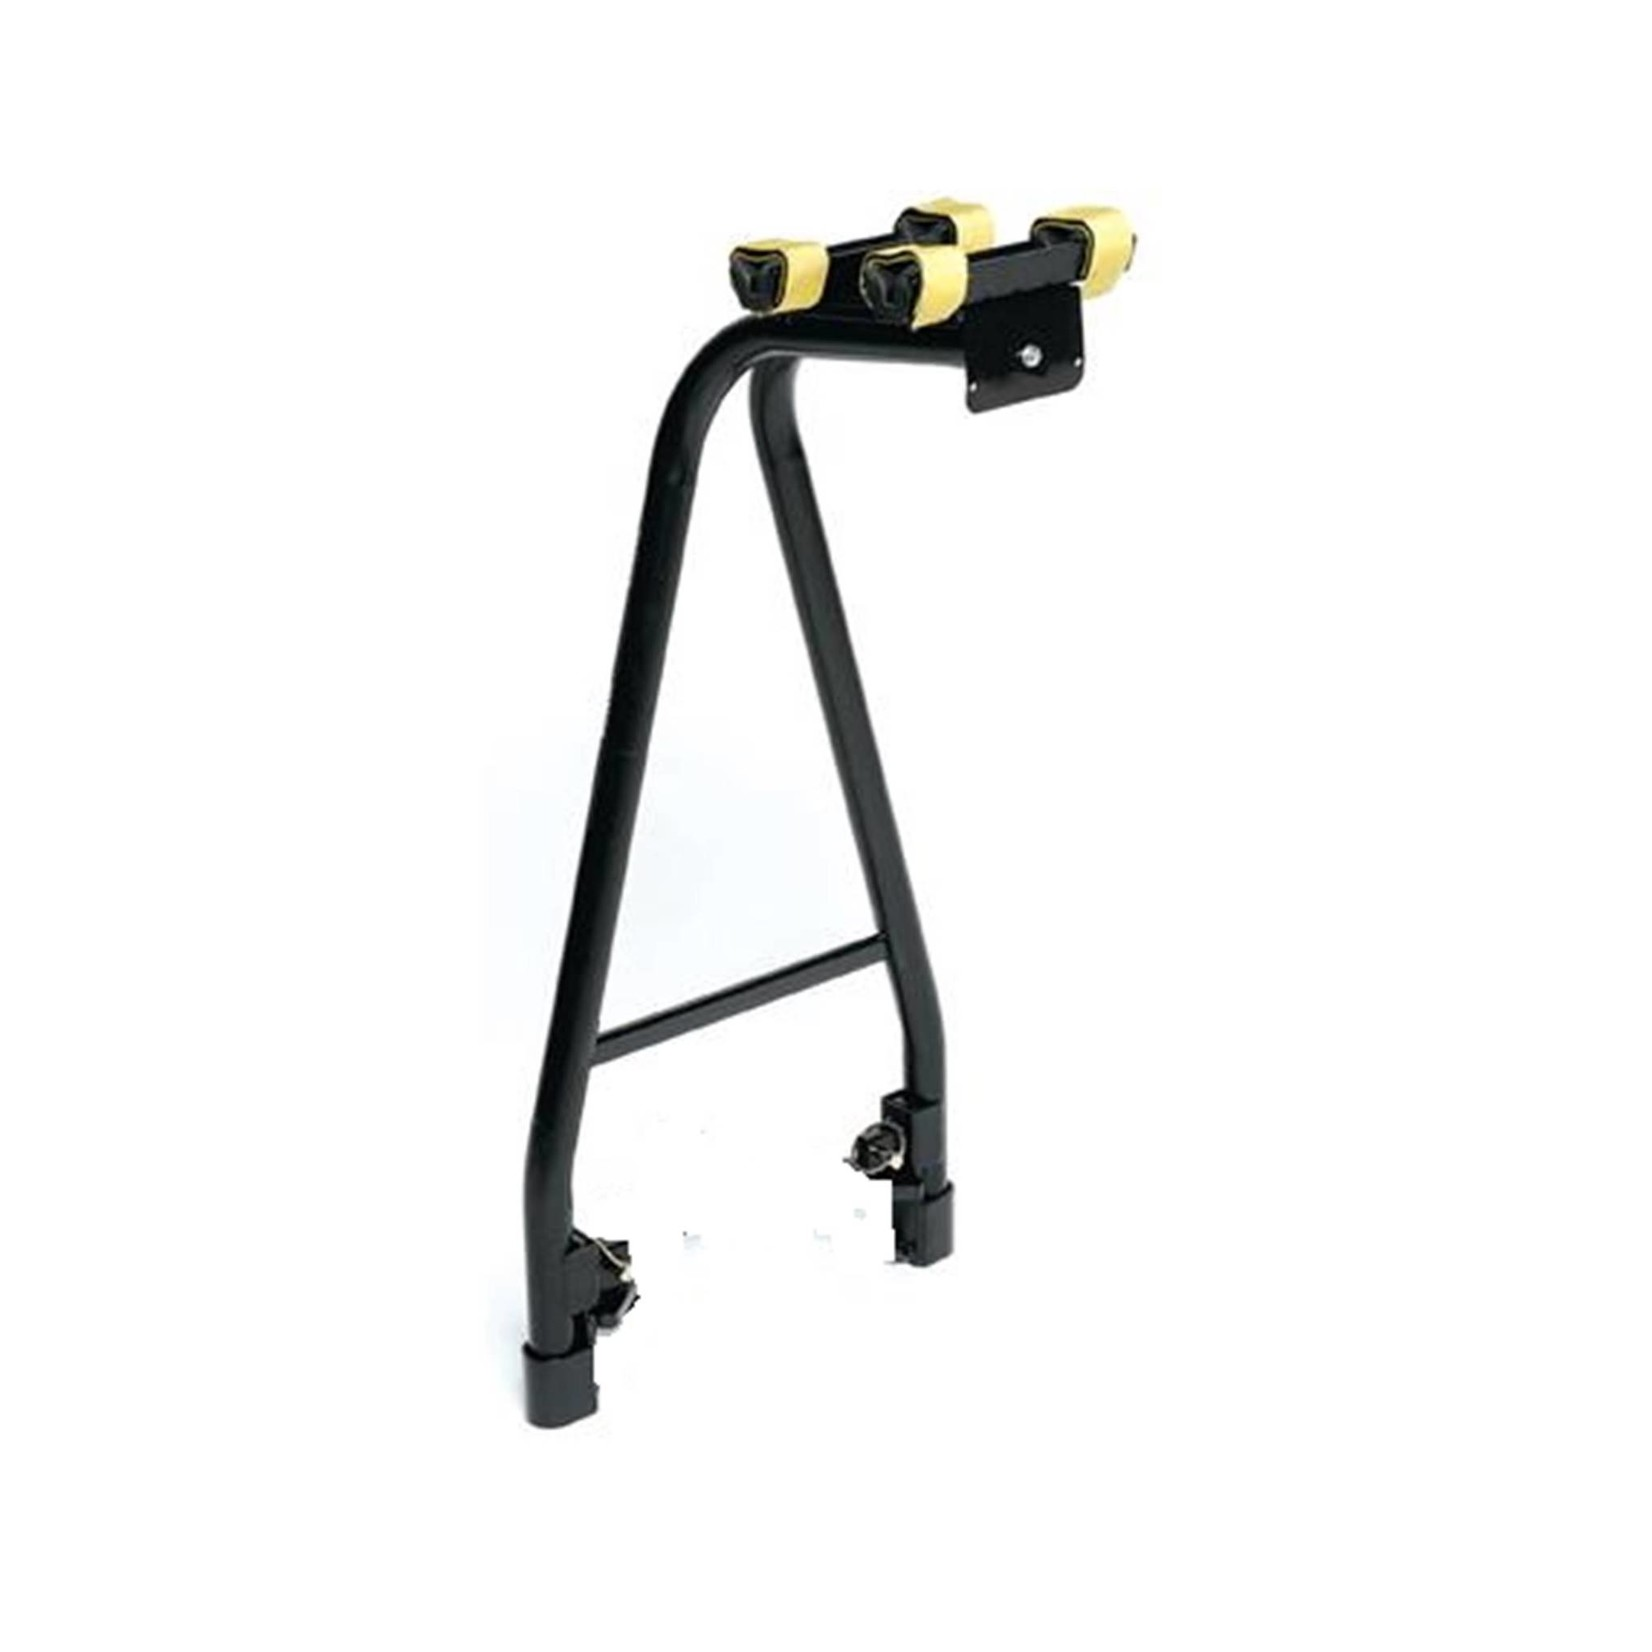 Pacific A/Frame 2 Bike Carrier, rack only